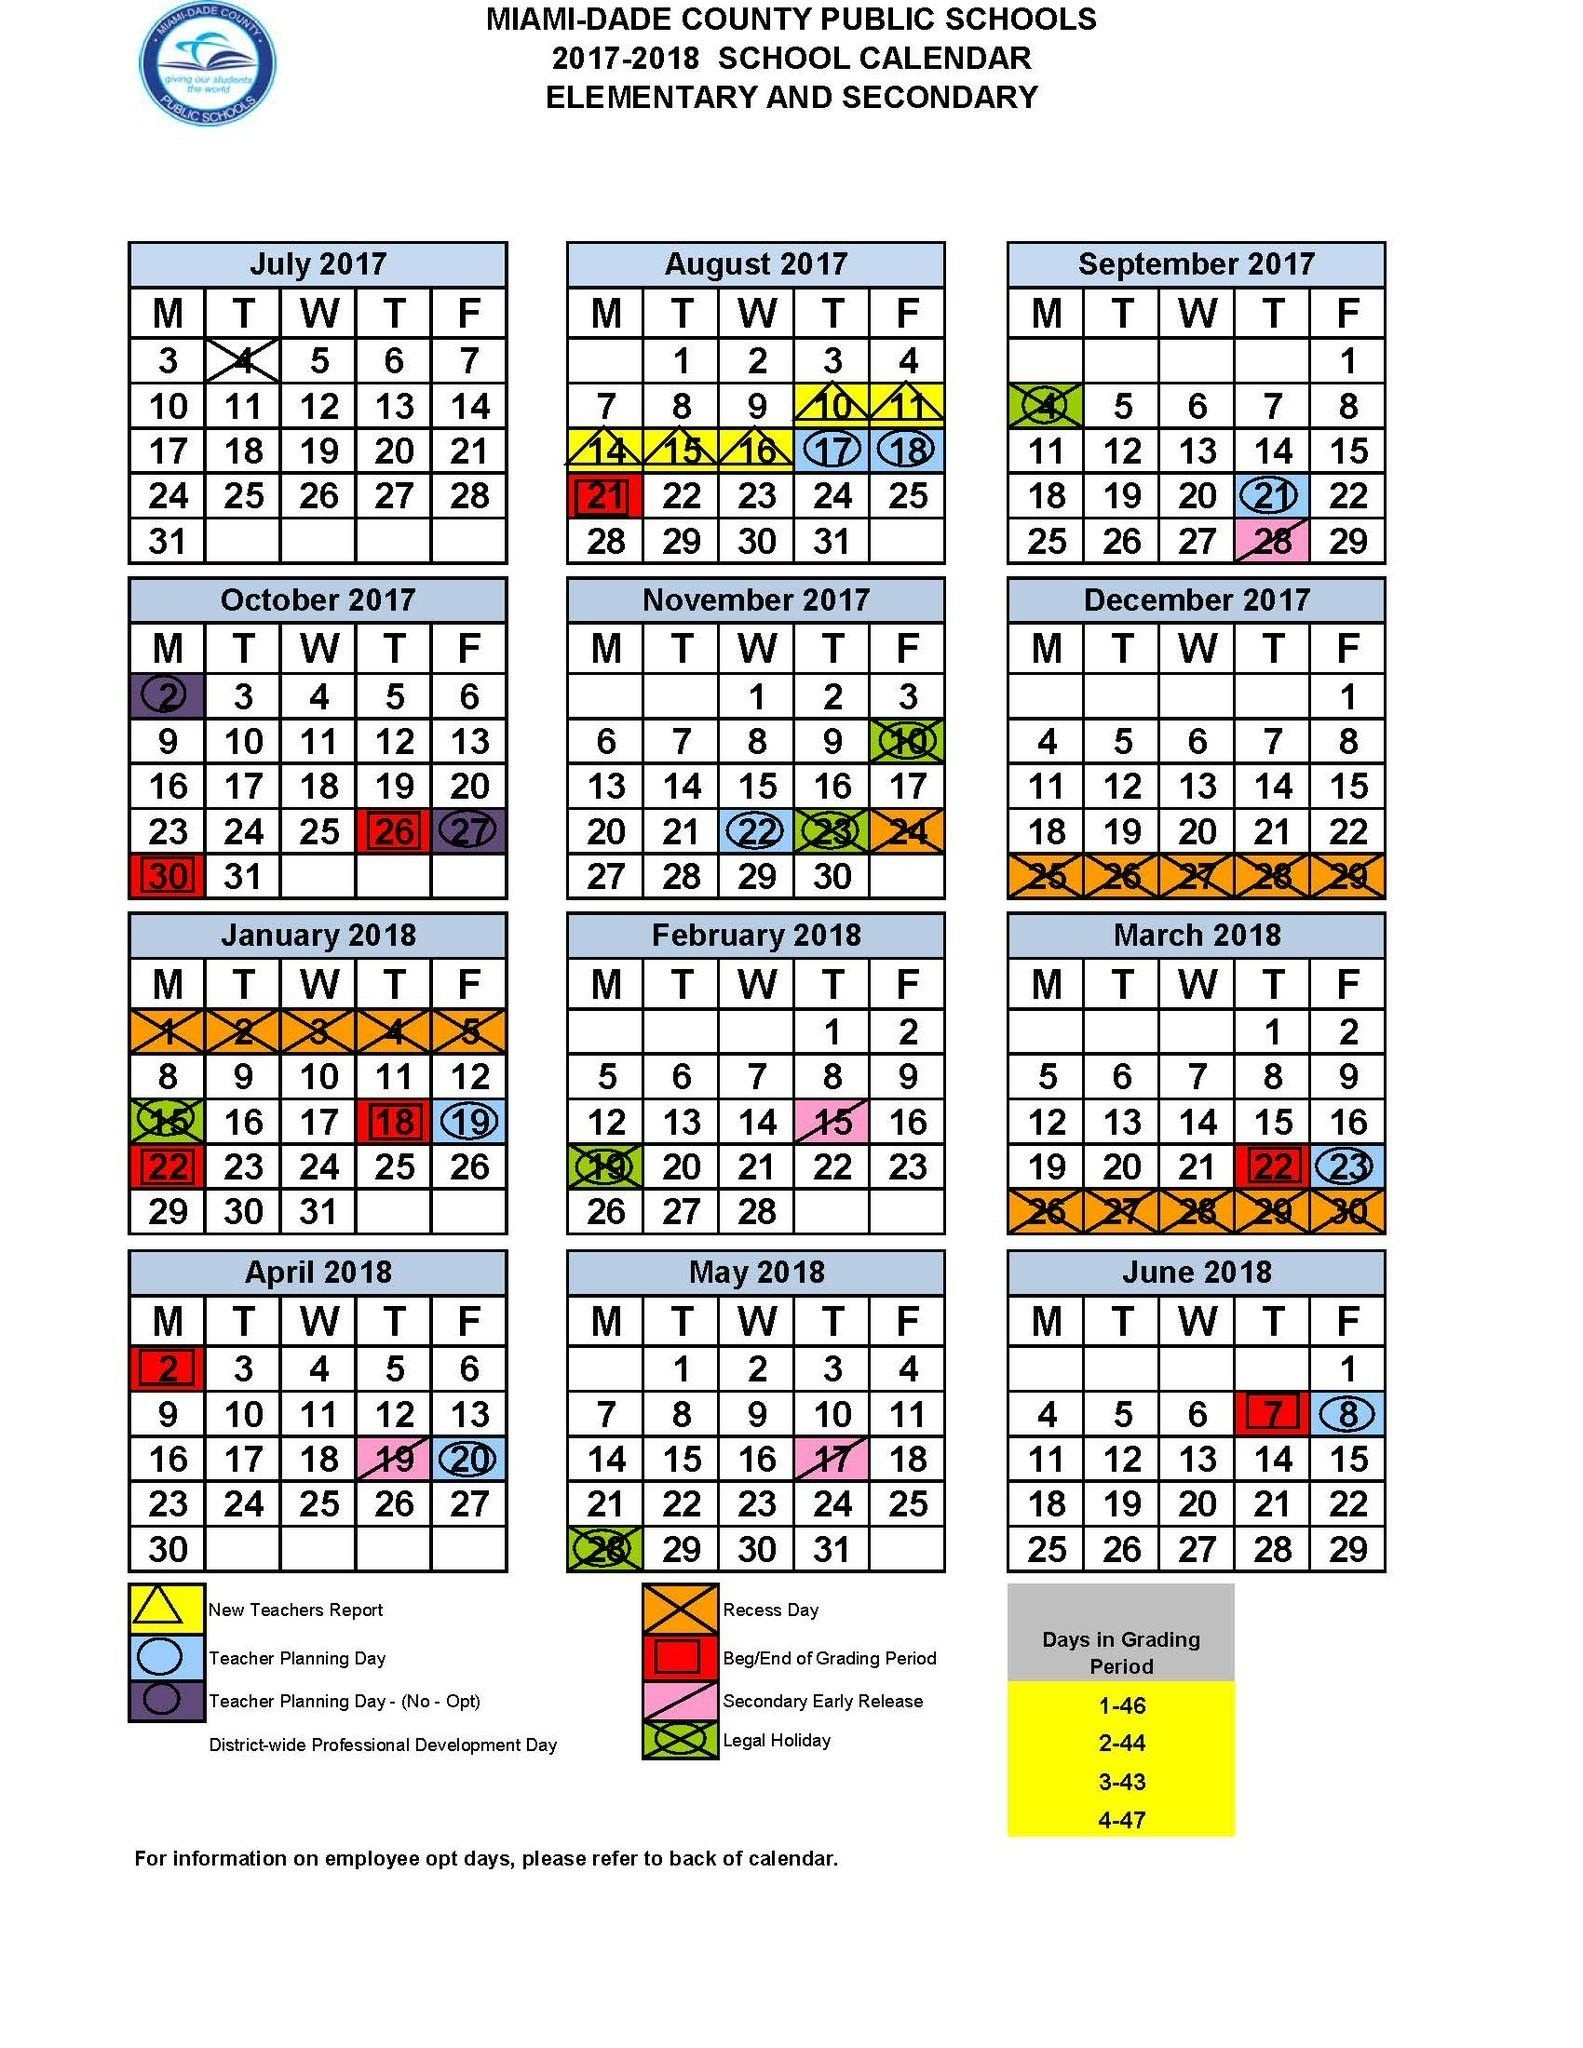 "Miami Dade Schools On Twitter "" Mdcps School Board Approves 2017_Calendar School Year Miami Dade"